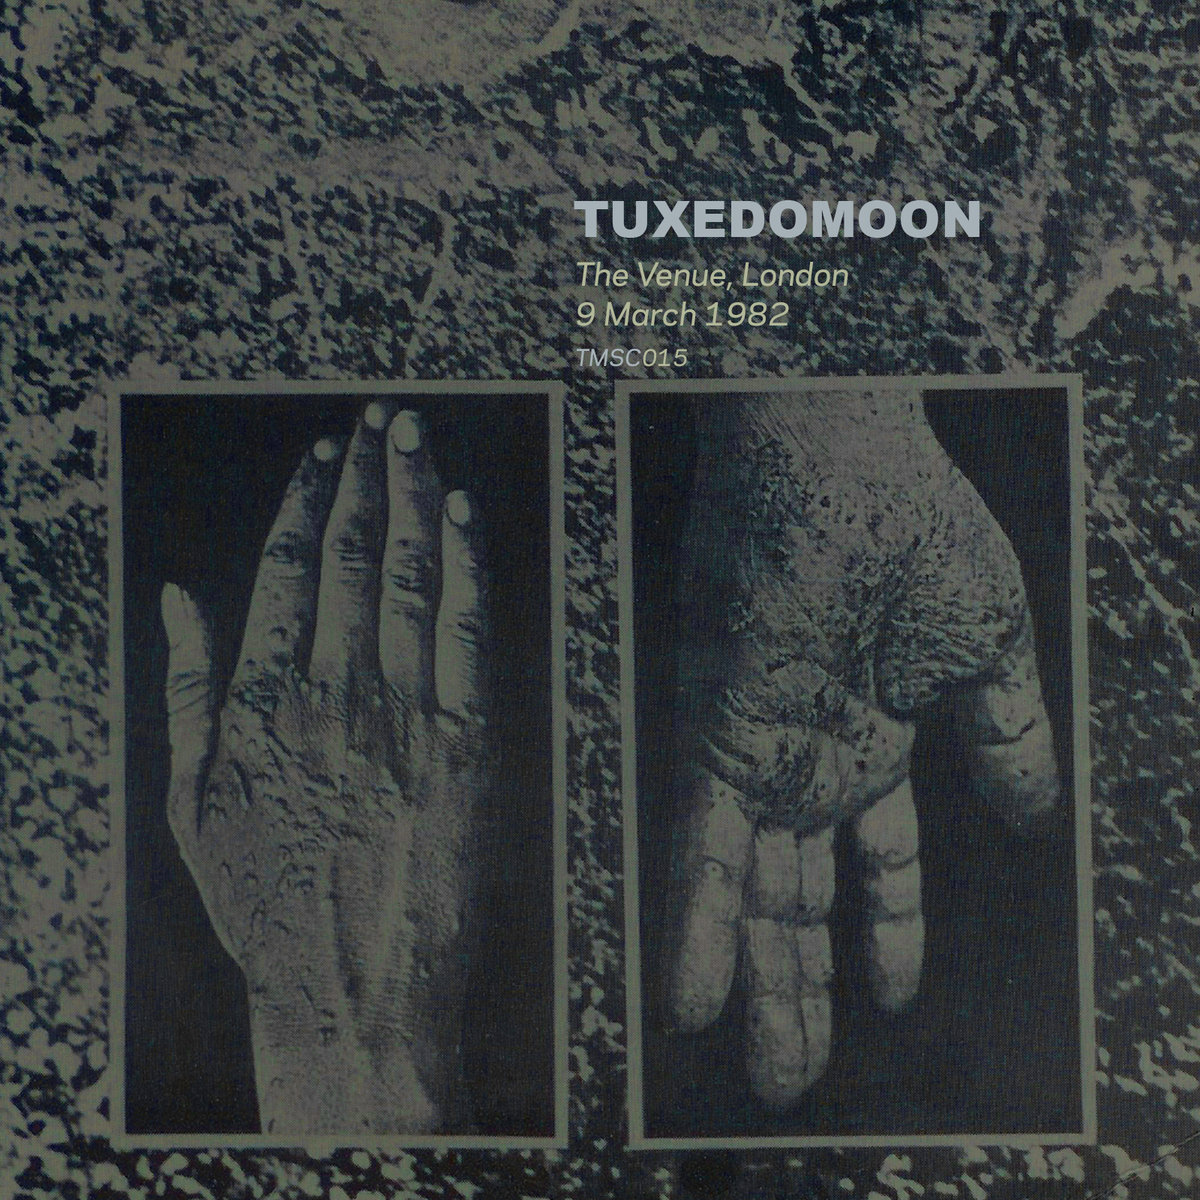 Tuxedomoon Live in London 1982 Now Available